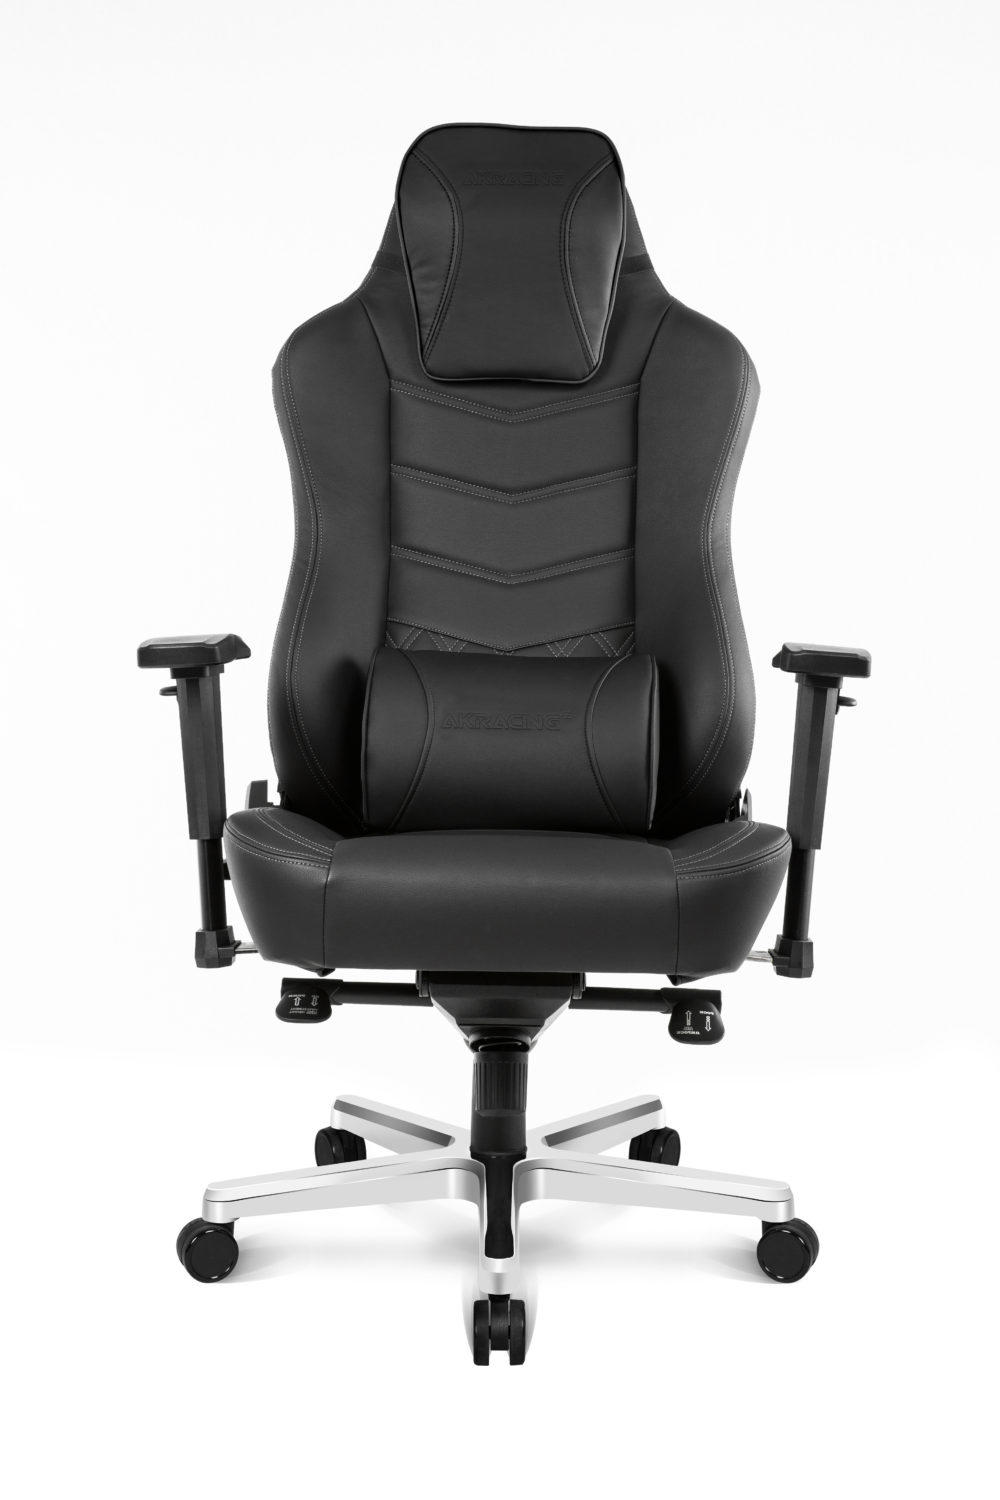 AKRacing Office Onyx deluxe gamestoel